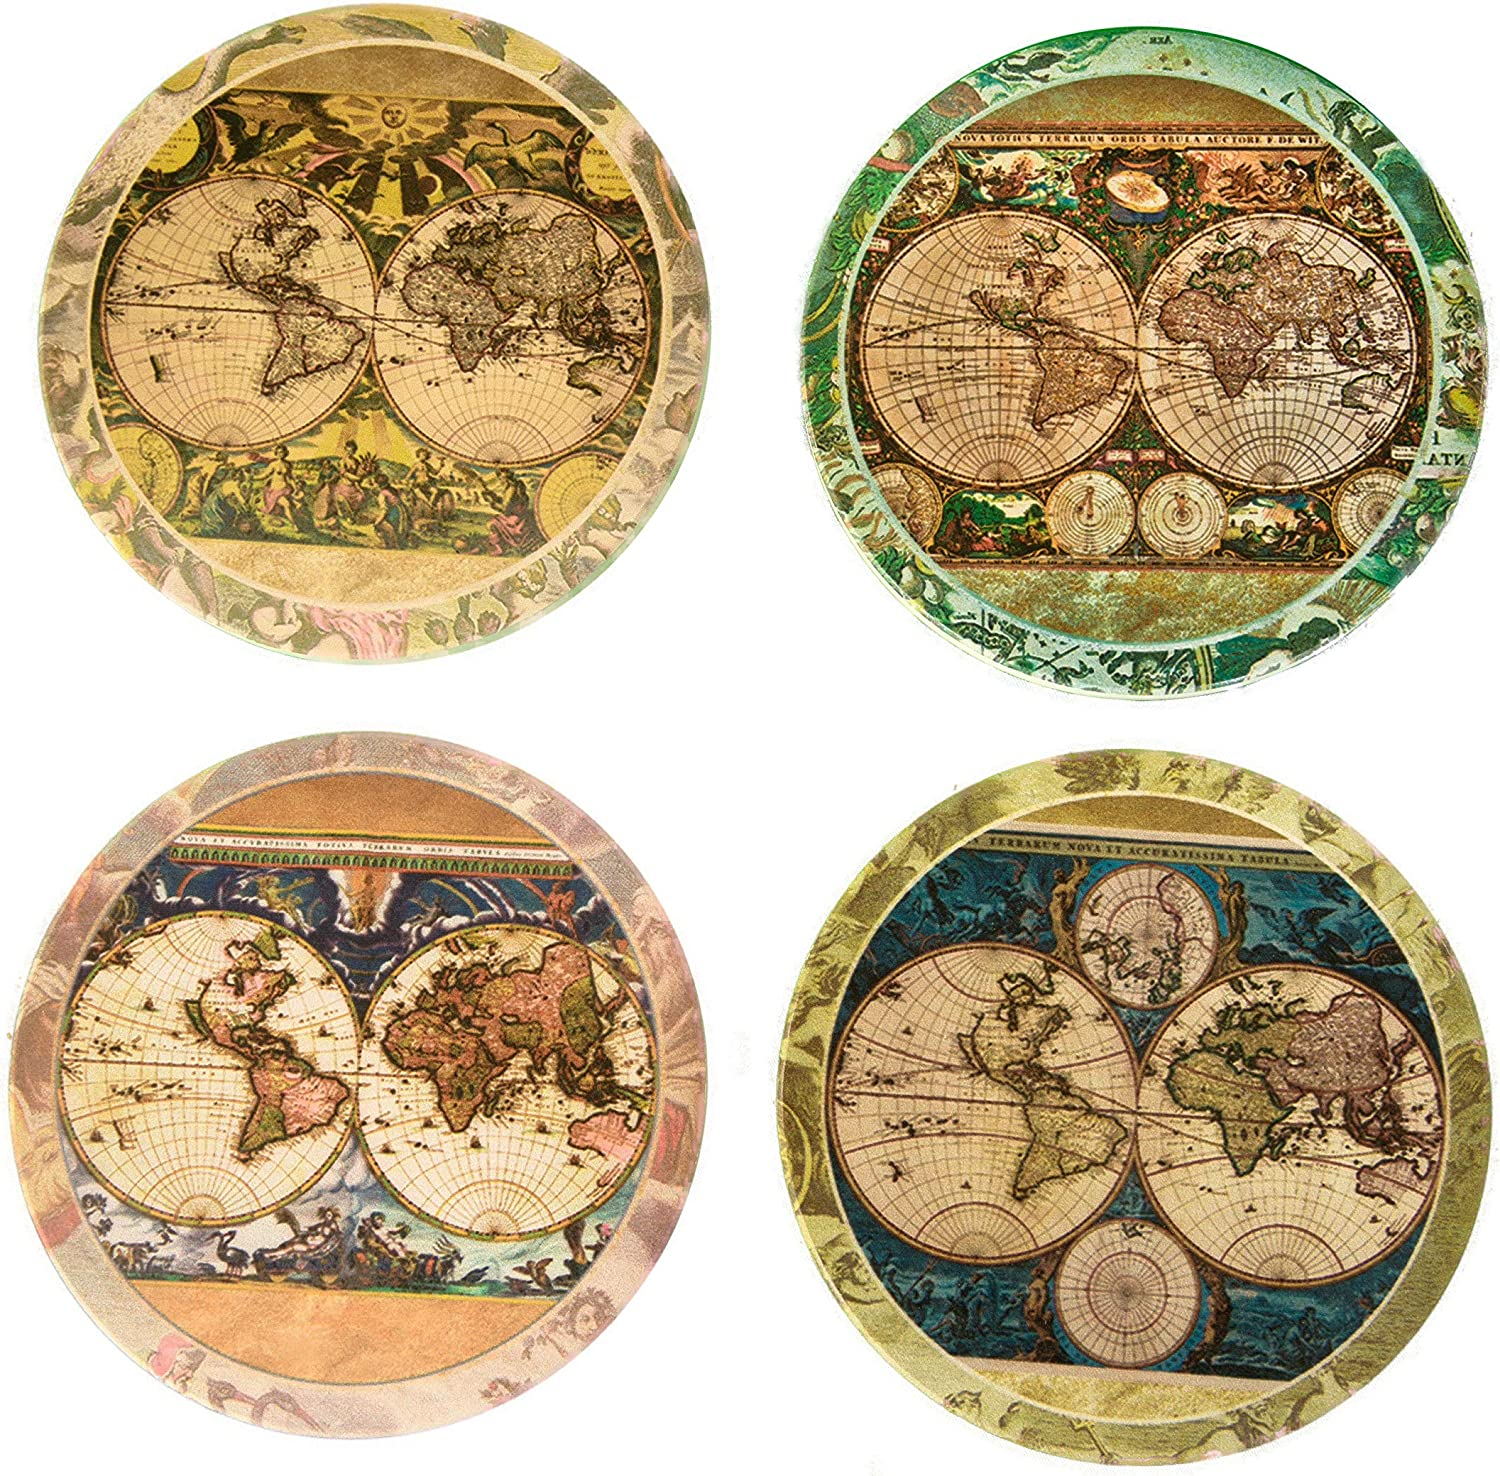 Amazon Com Coasterstone Absorbent Stone Coasters Vintage Old World Maps Multicolored Coasterstone Coasters Coasters